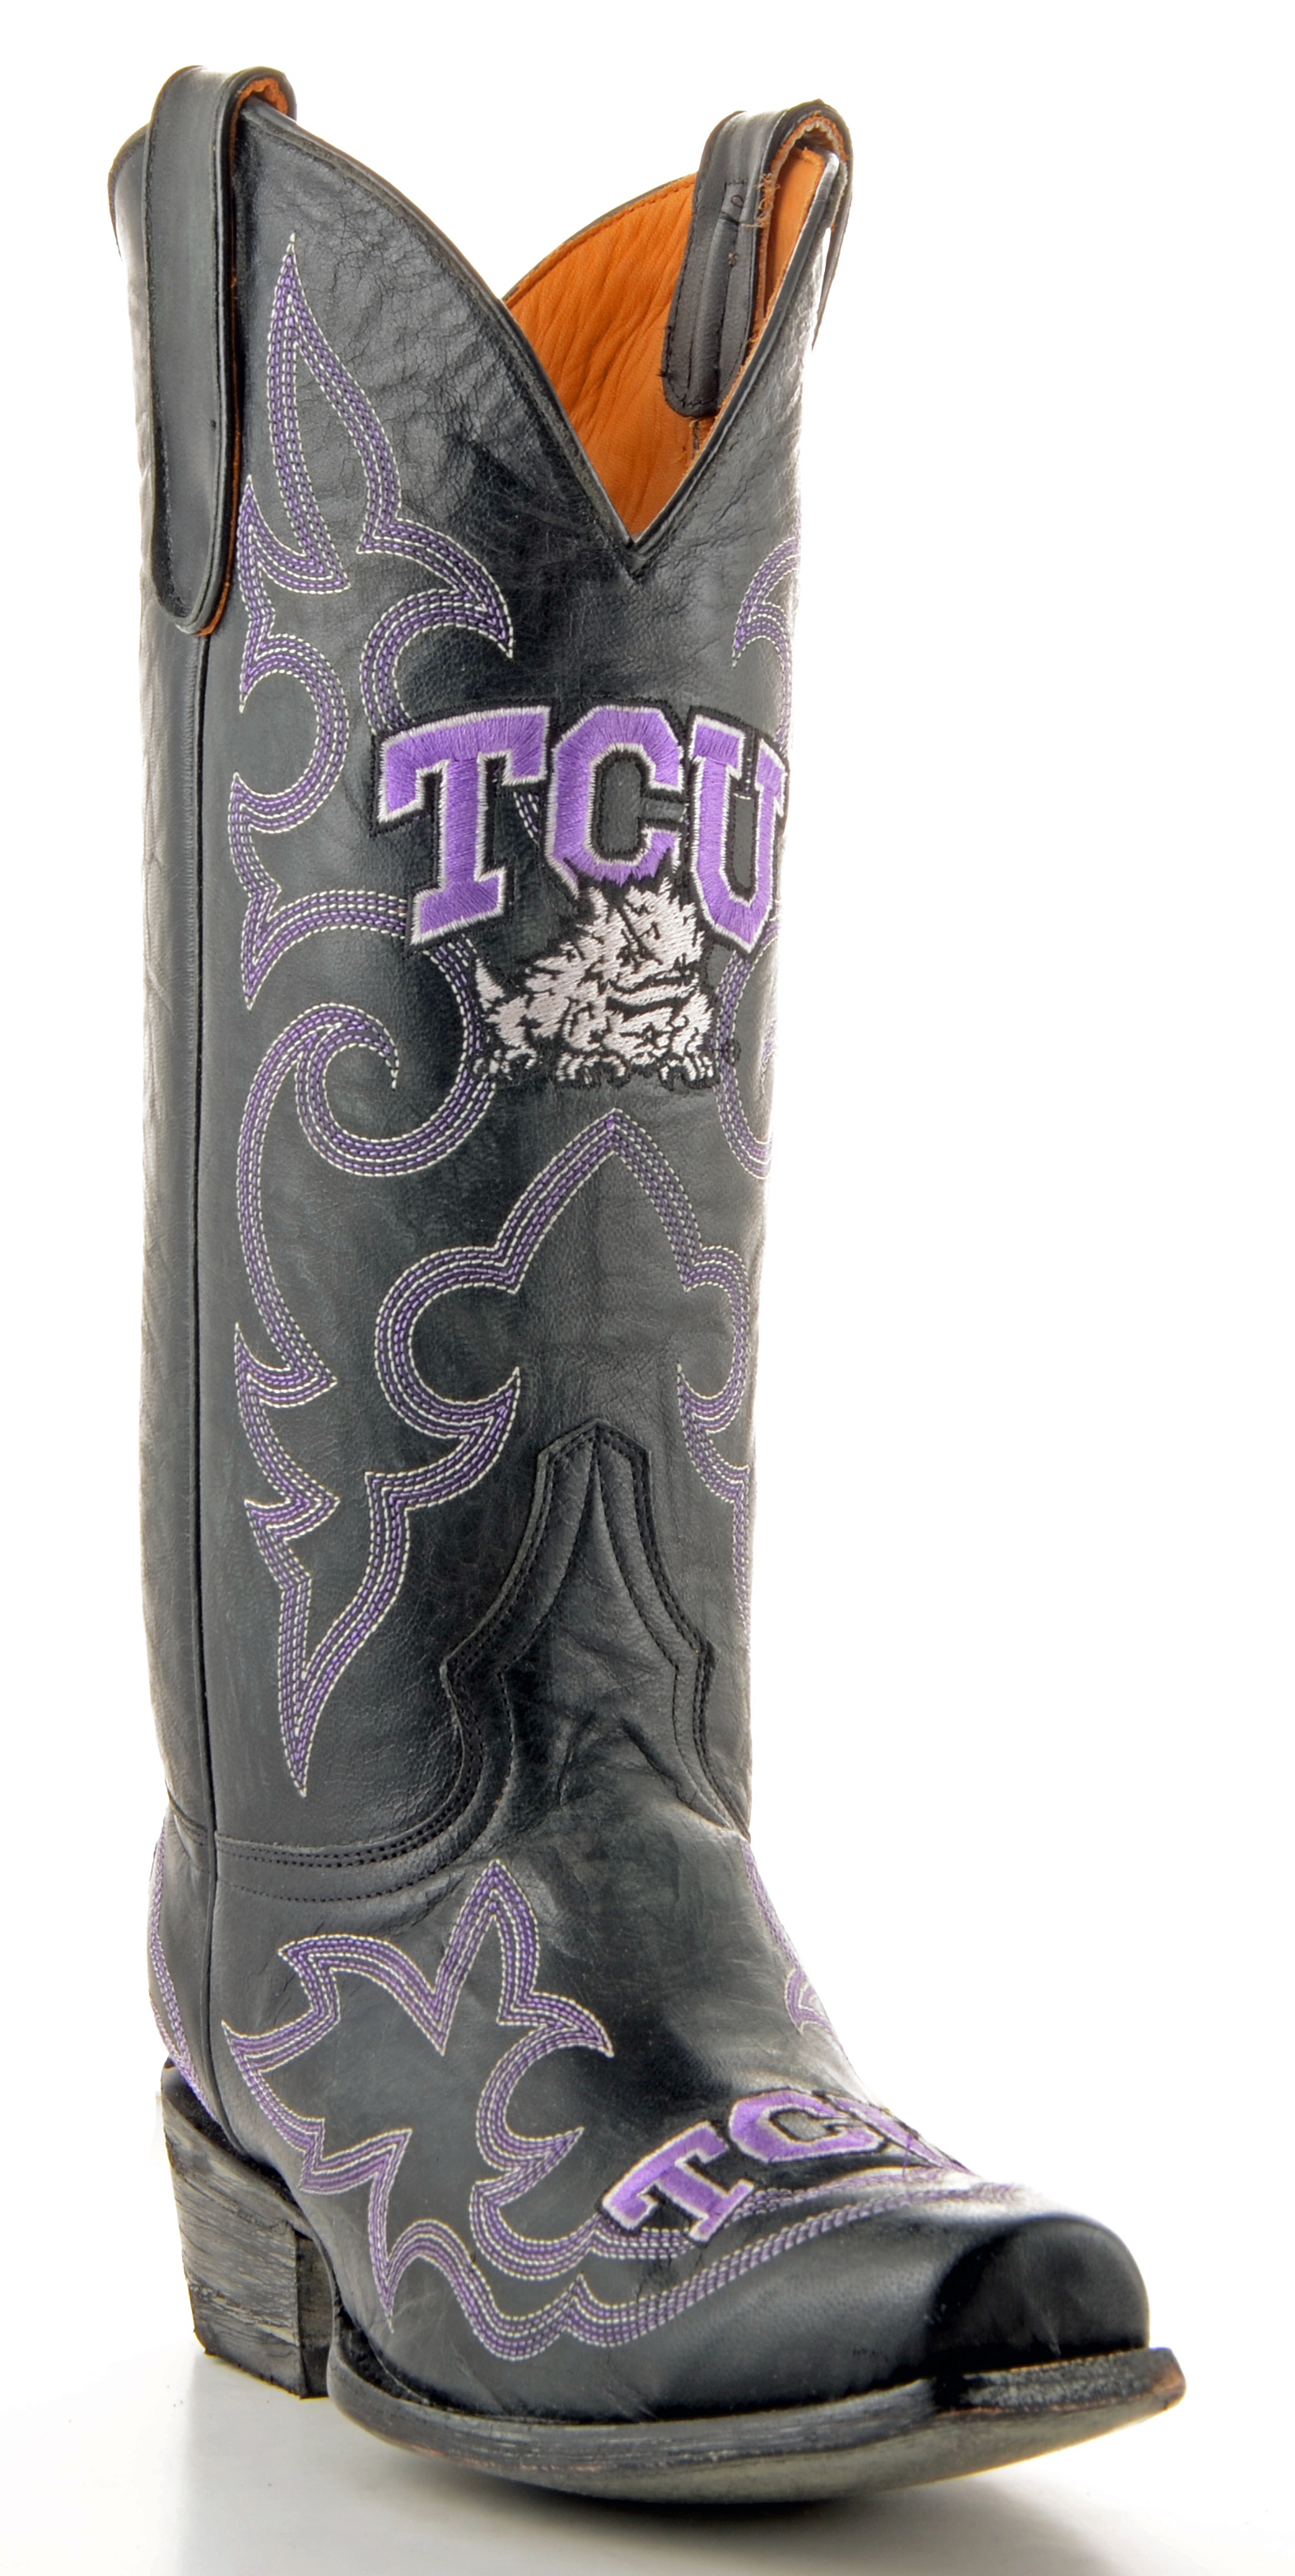 Gameday Boots Mens Leather Texas Christian Cowboy Boots by GameDay Boots